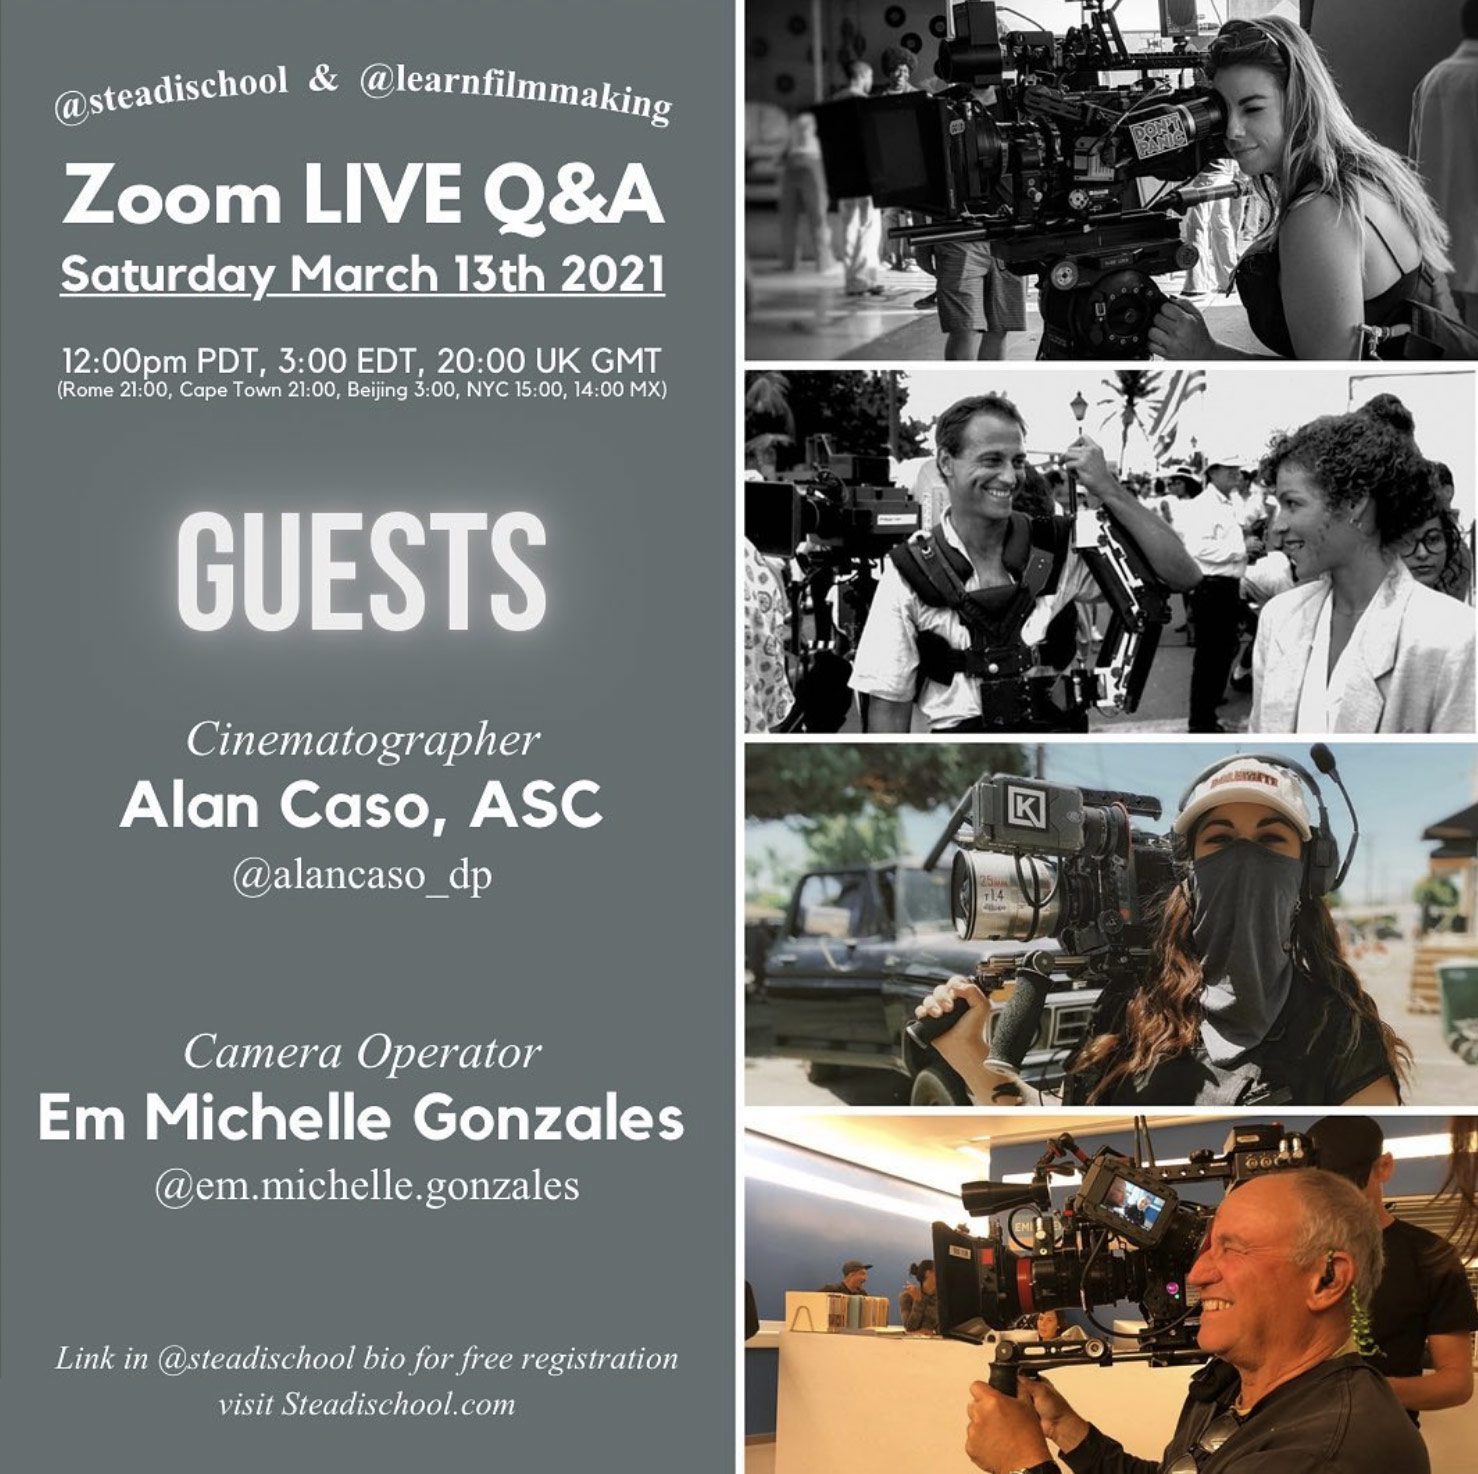 Our guests are Award Winning Cinematographer Alan Caso ASC @alancaso_dp (HBO's Six Feet Under), and Camera Operator Em Michelle Gonzales @em.michelle.gonzales (Peacock's Wilmore).